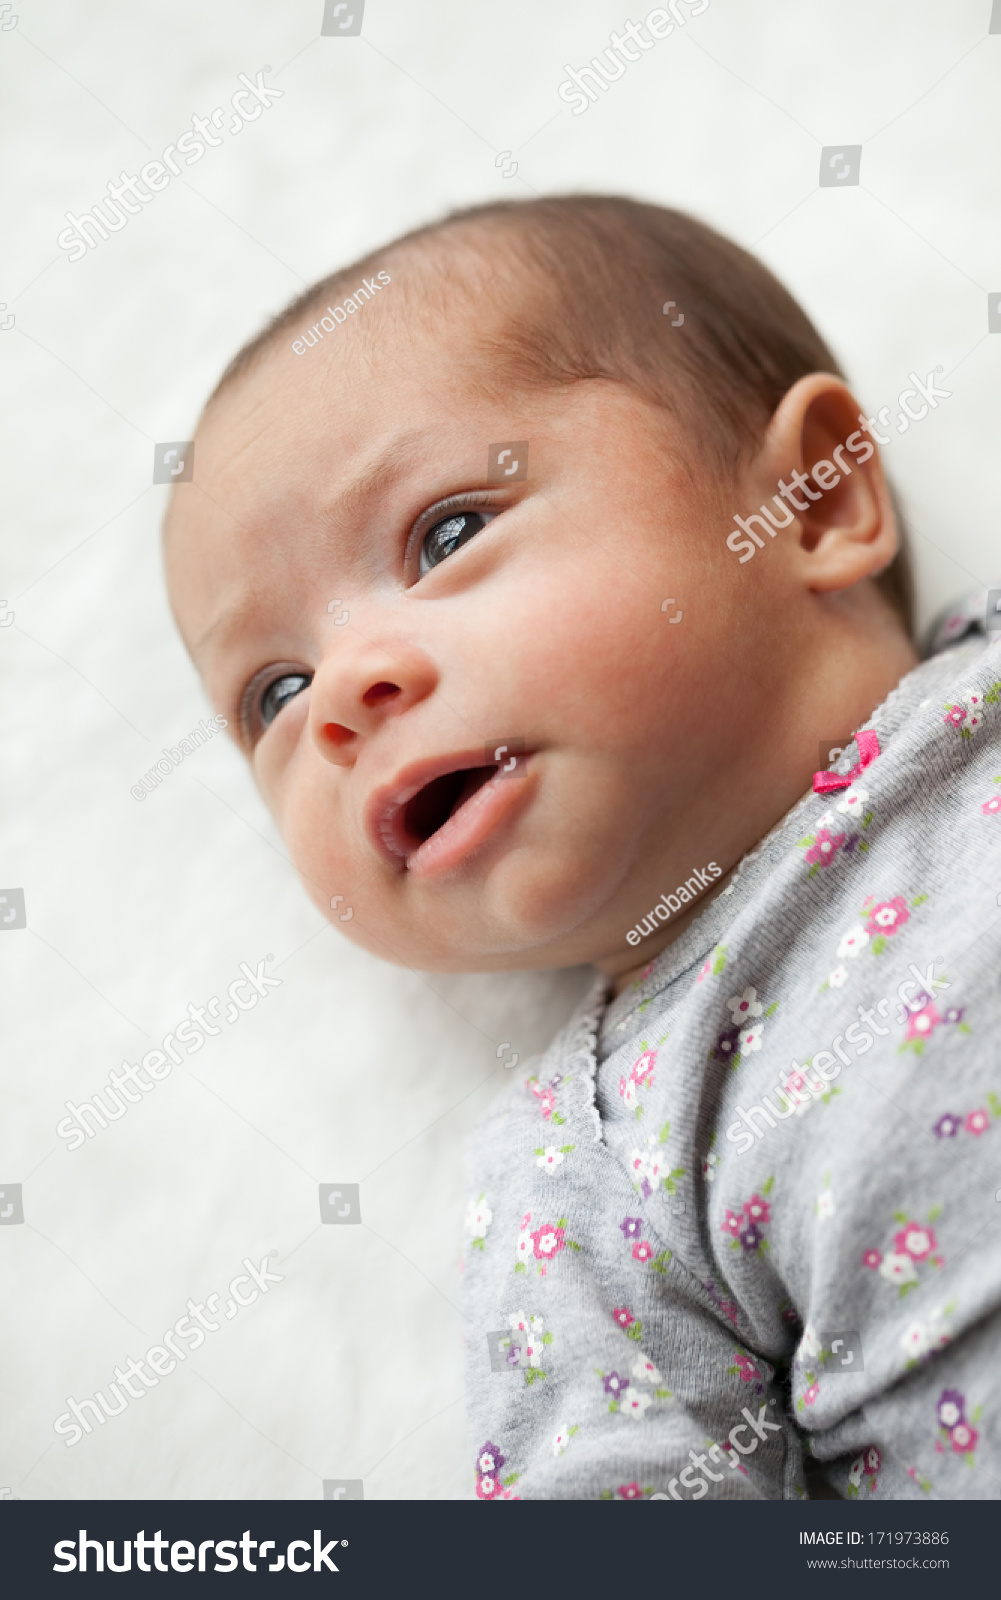 Newborn mixed race hispanic caucasian baby girl laying on a white blanket looking away